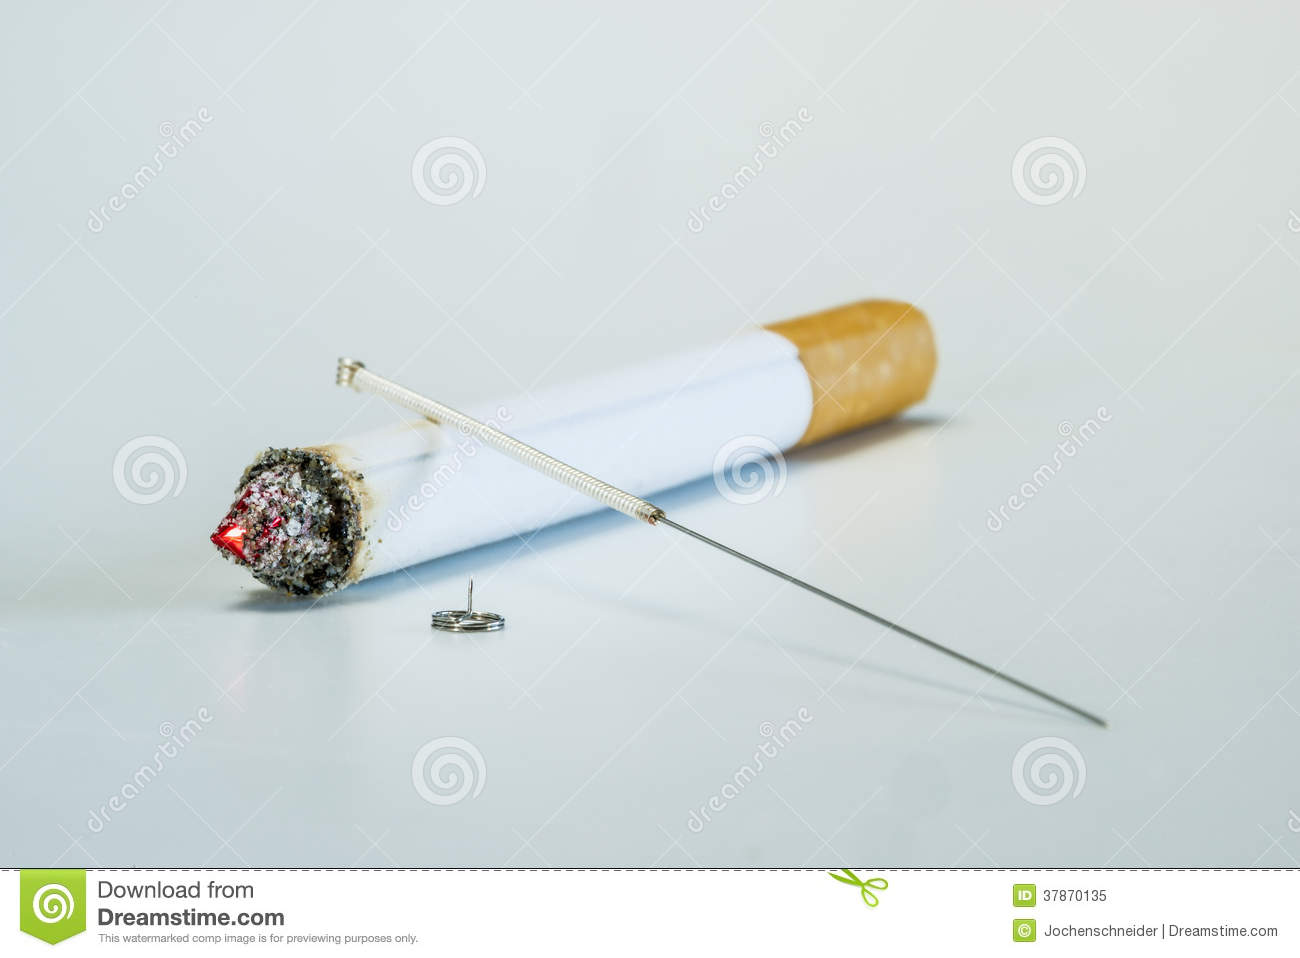 6 Facts to Know When Using Acupuncture to Quit Smoking